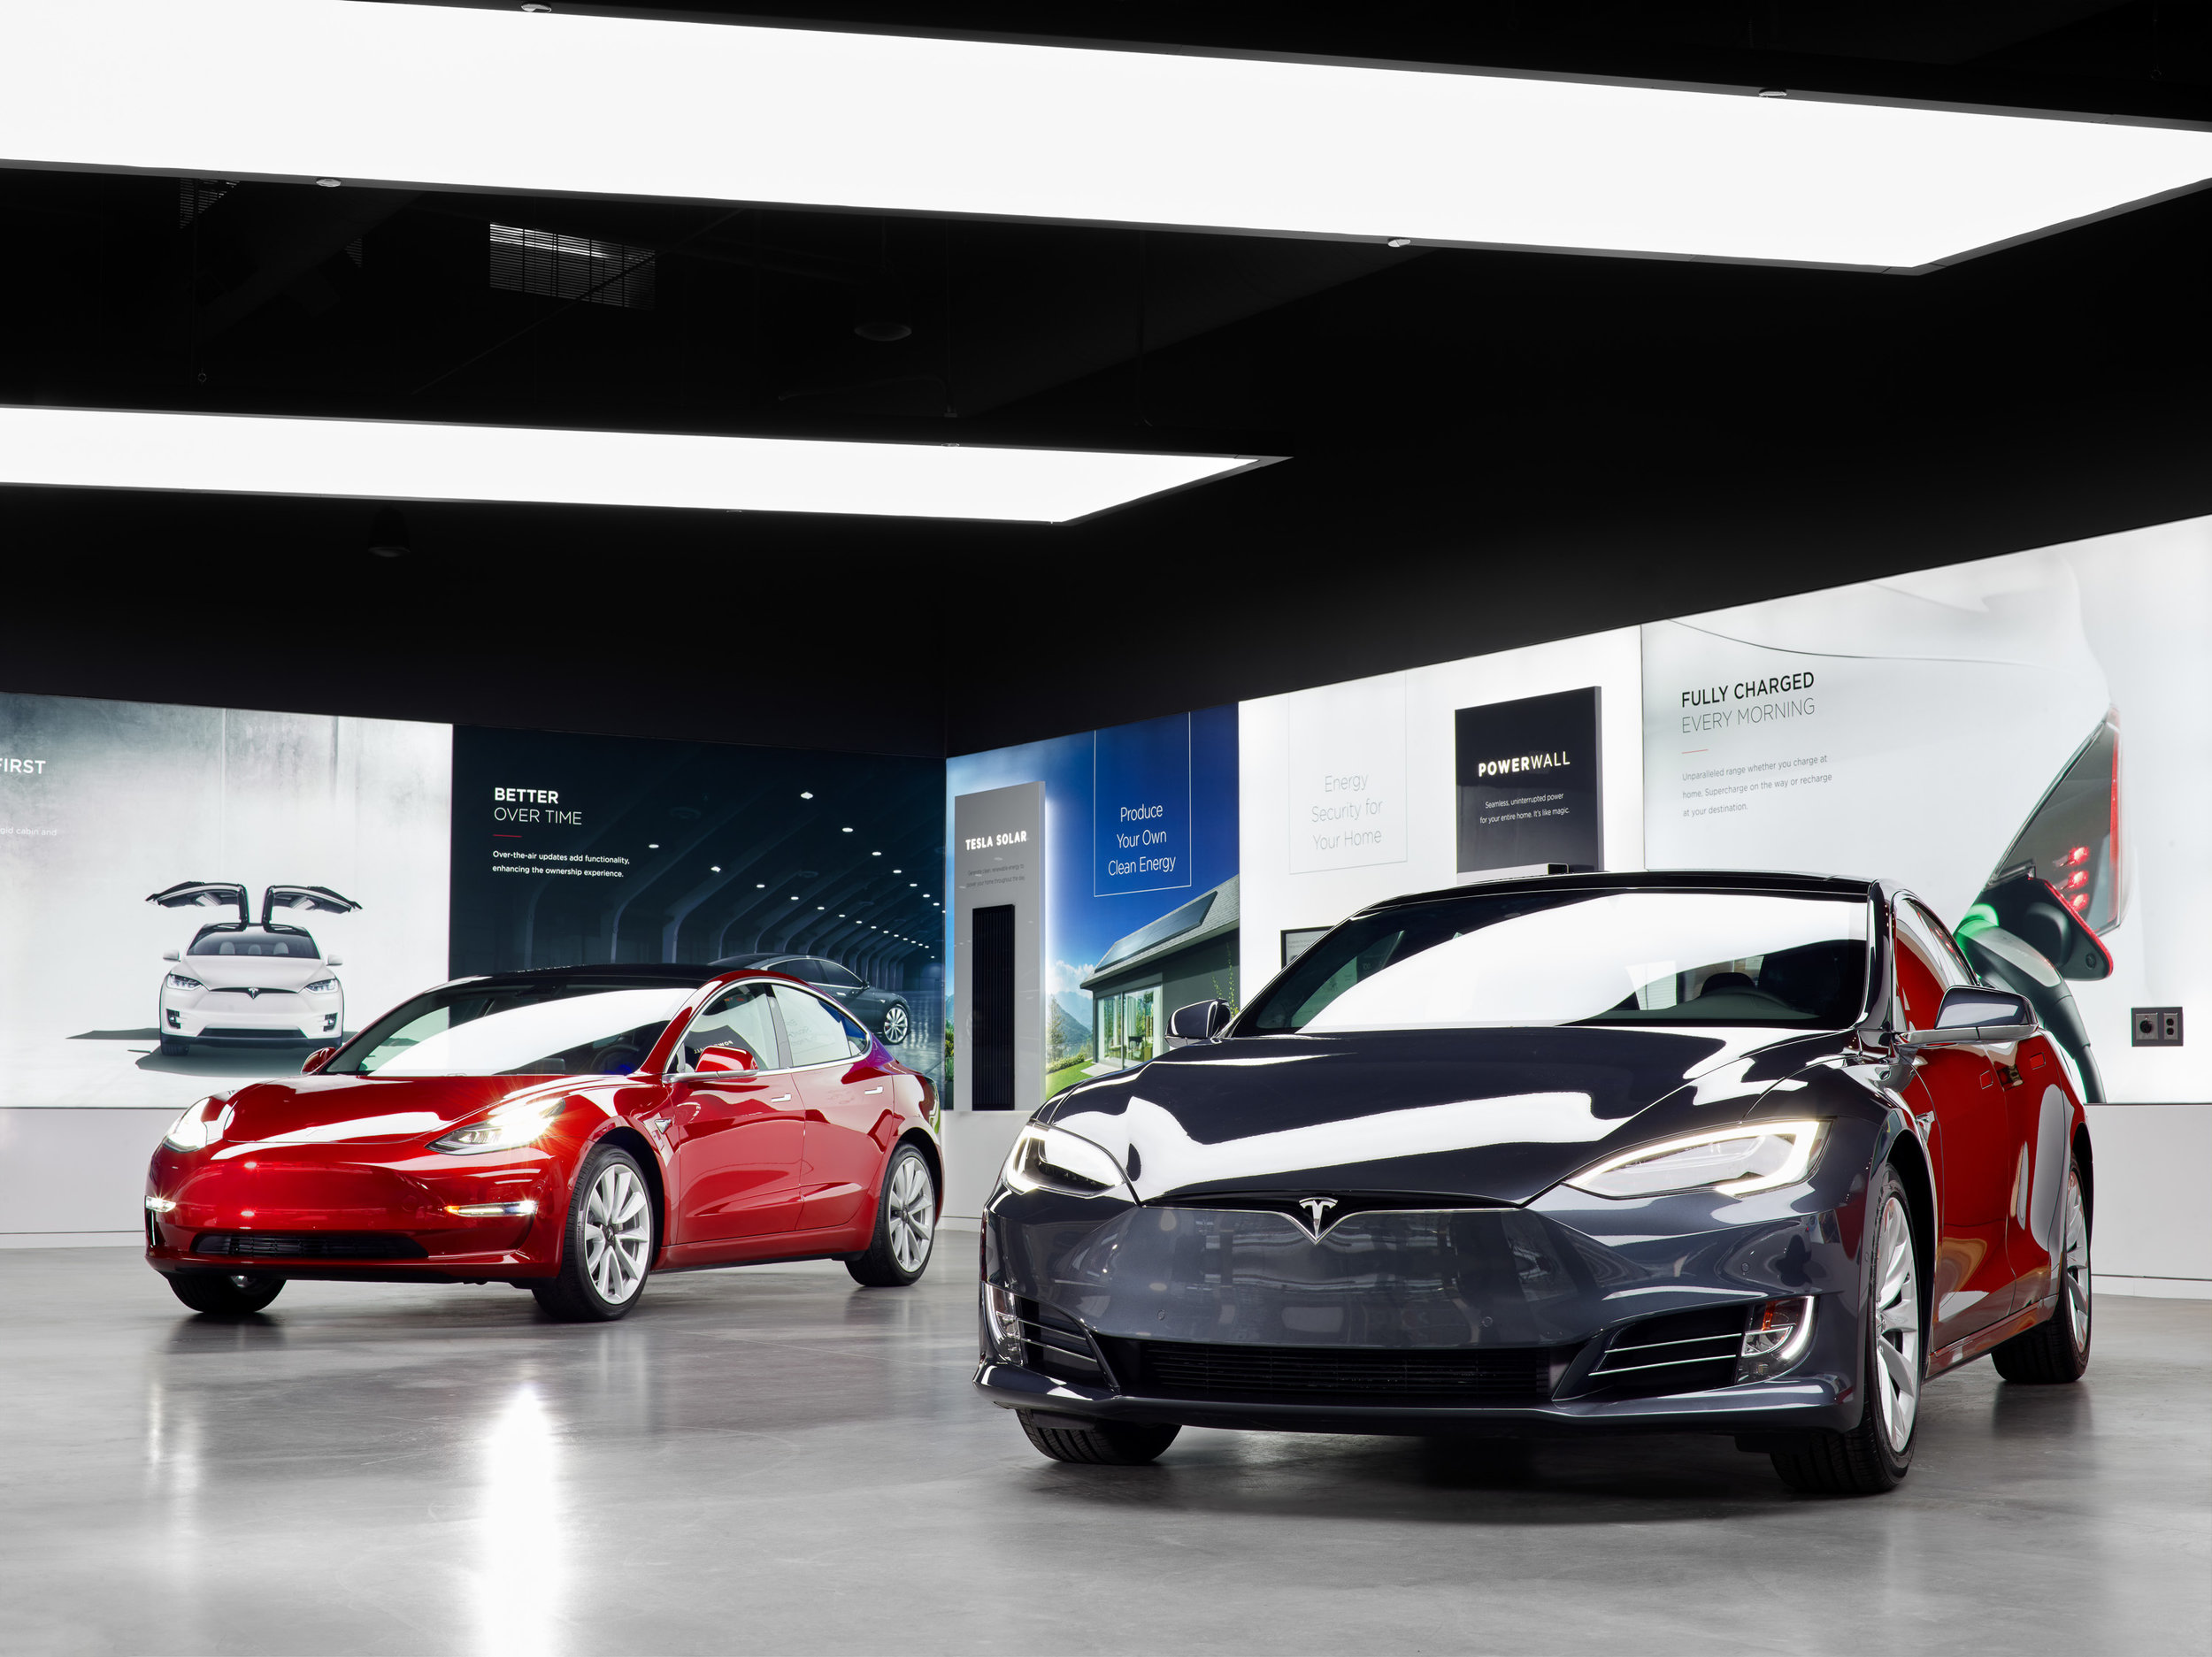 Tesla cars in chic